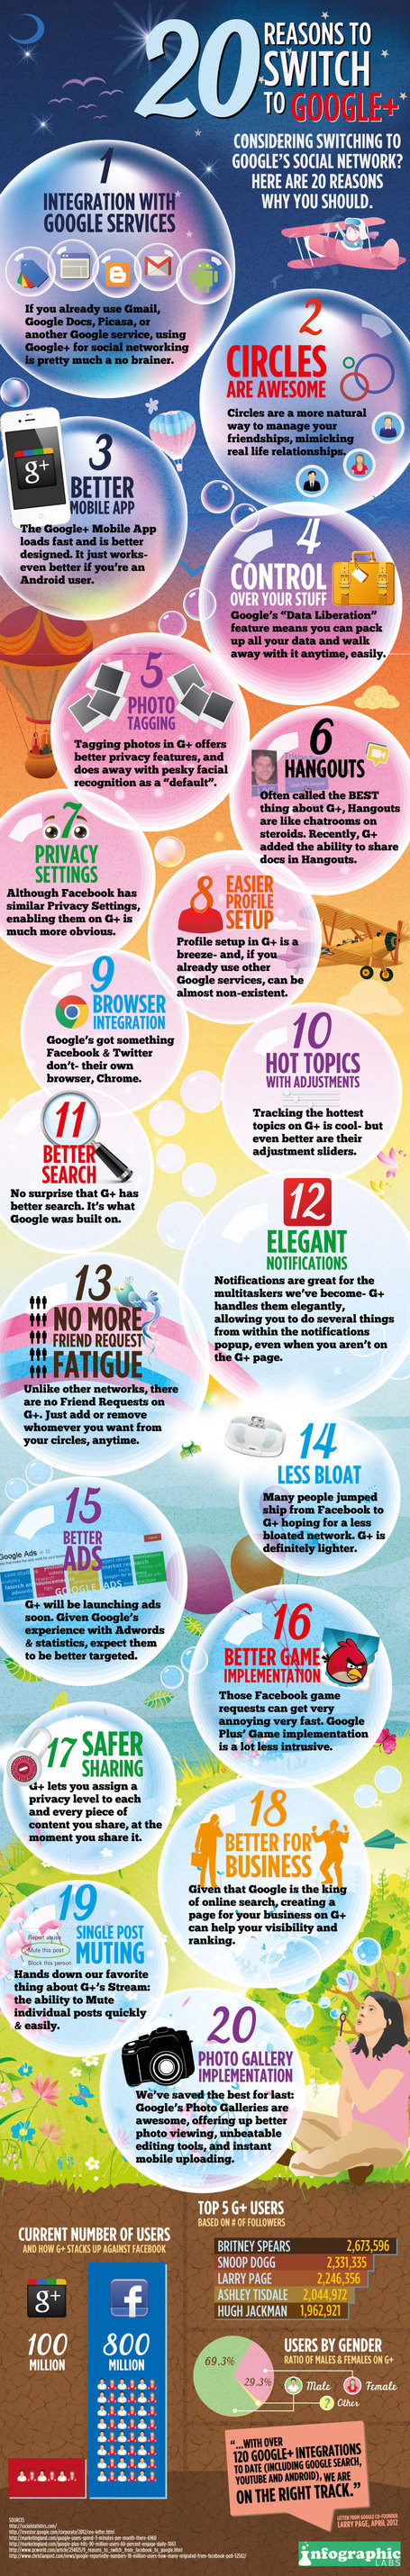 20 Reasons Why you Should Use Google Plus [Infographic] | Digital-News on Scoop.it today | Scoop.it